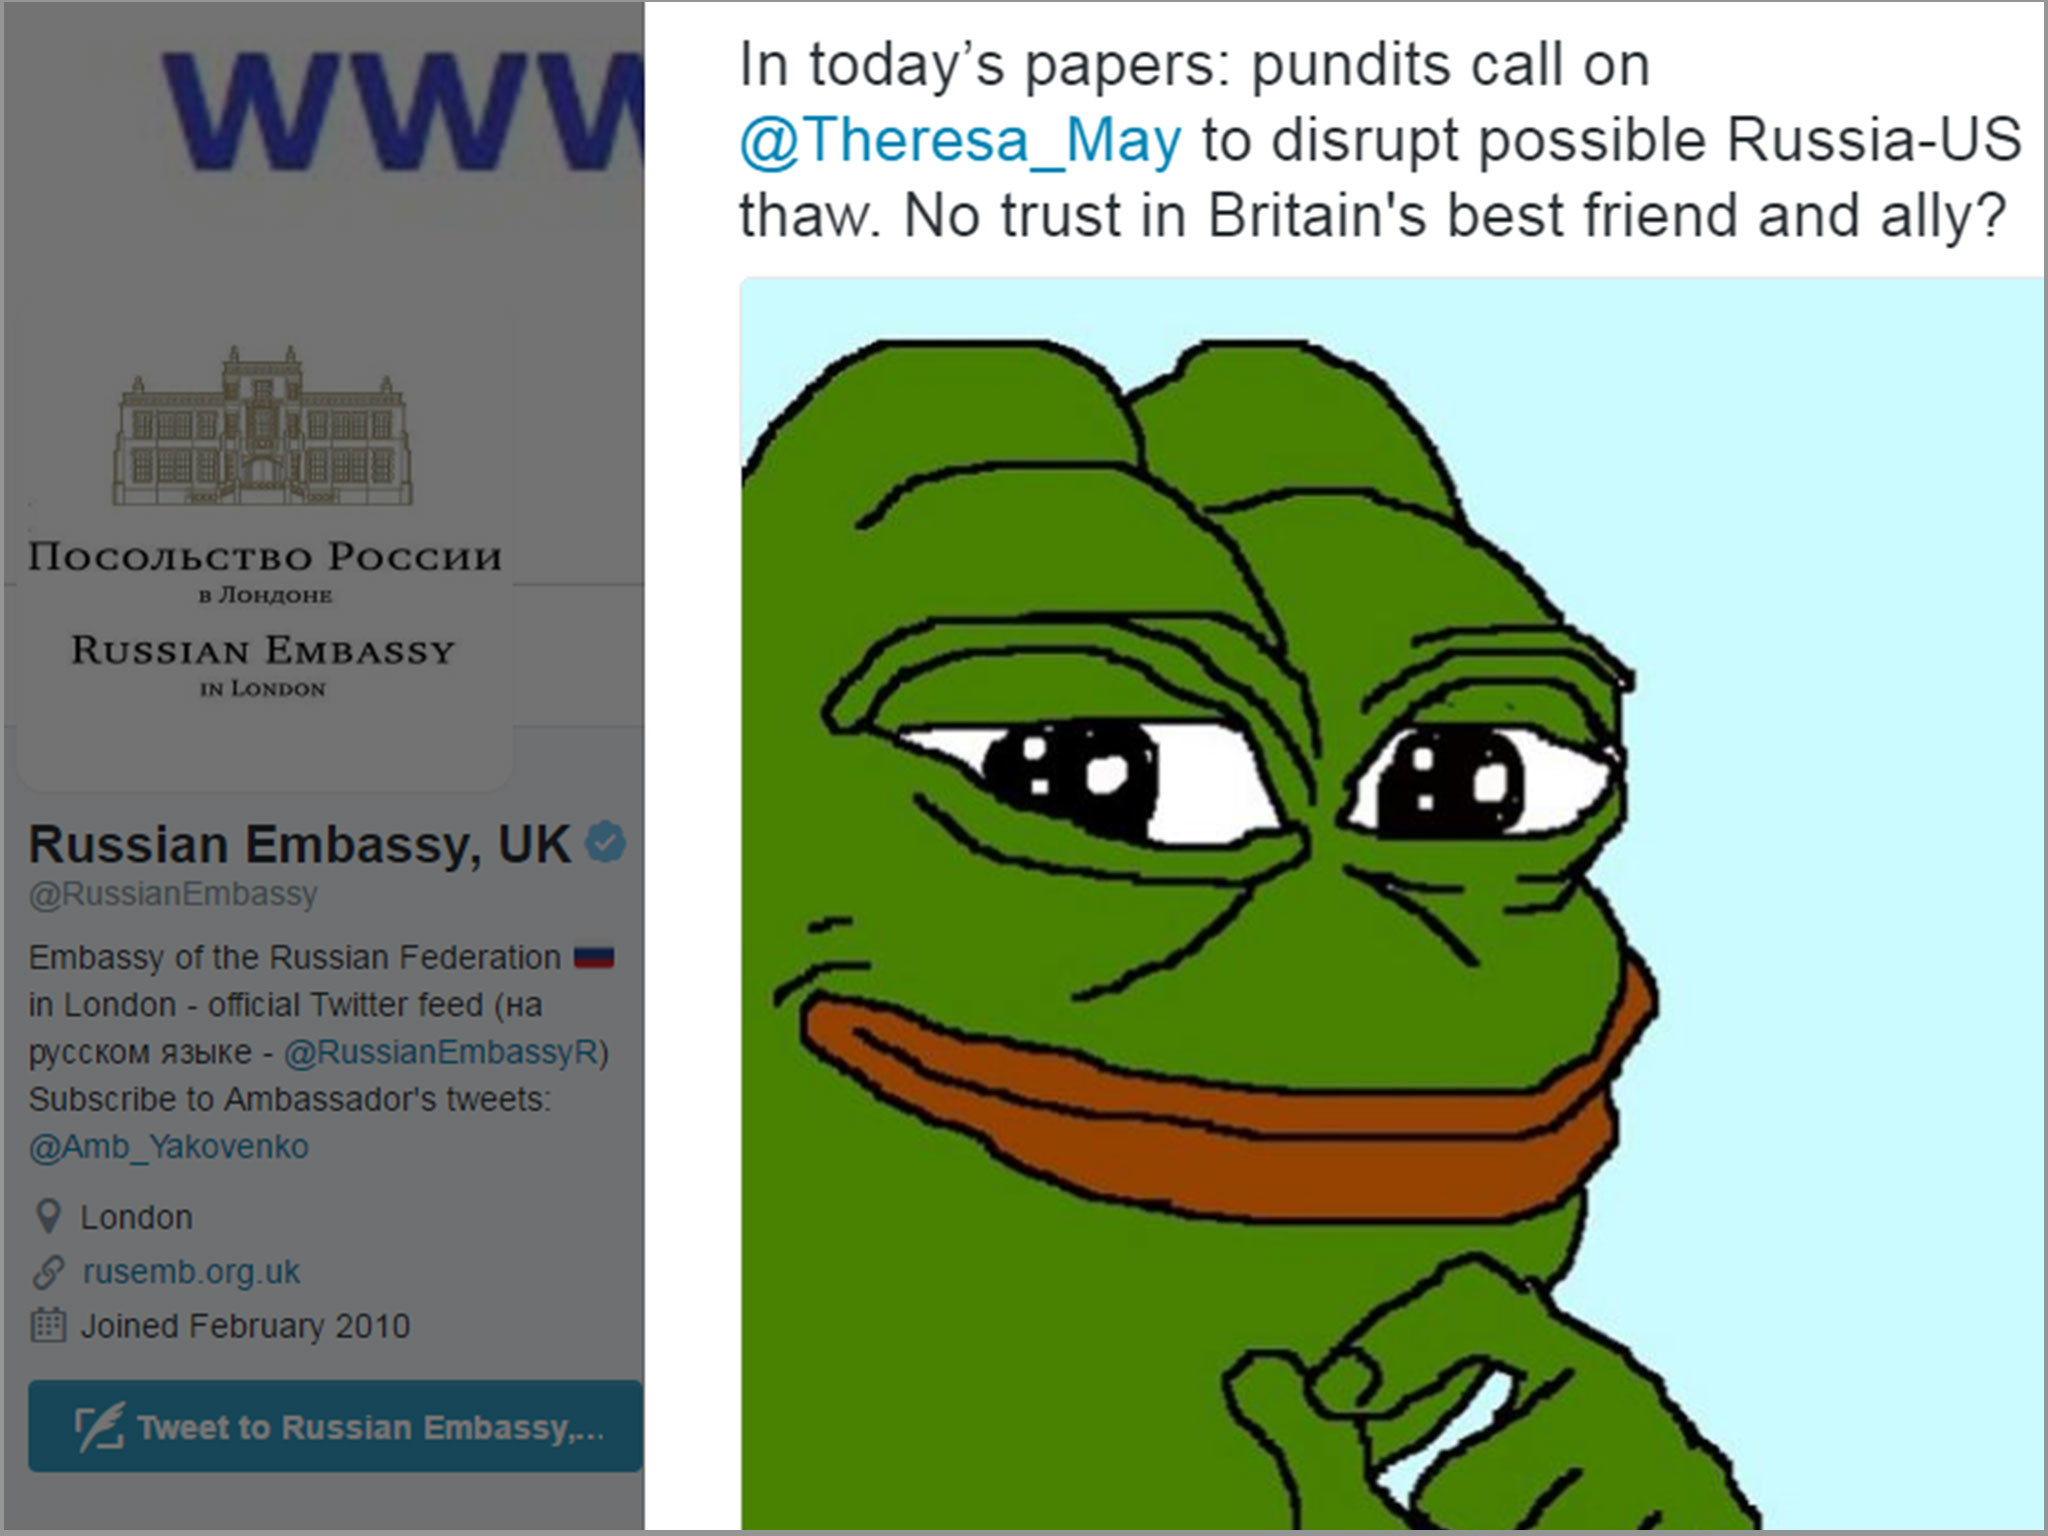 Russian embassy in London hits out at Theresa May with 'white supremacist'  Pepe the Frog meme | The Independent